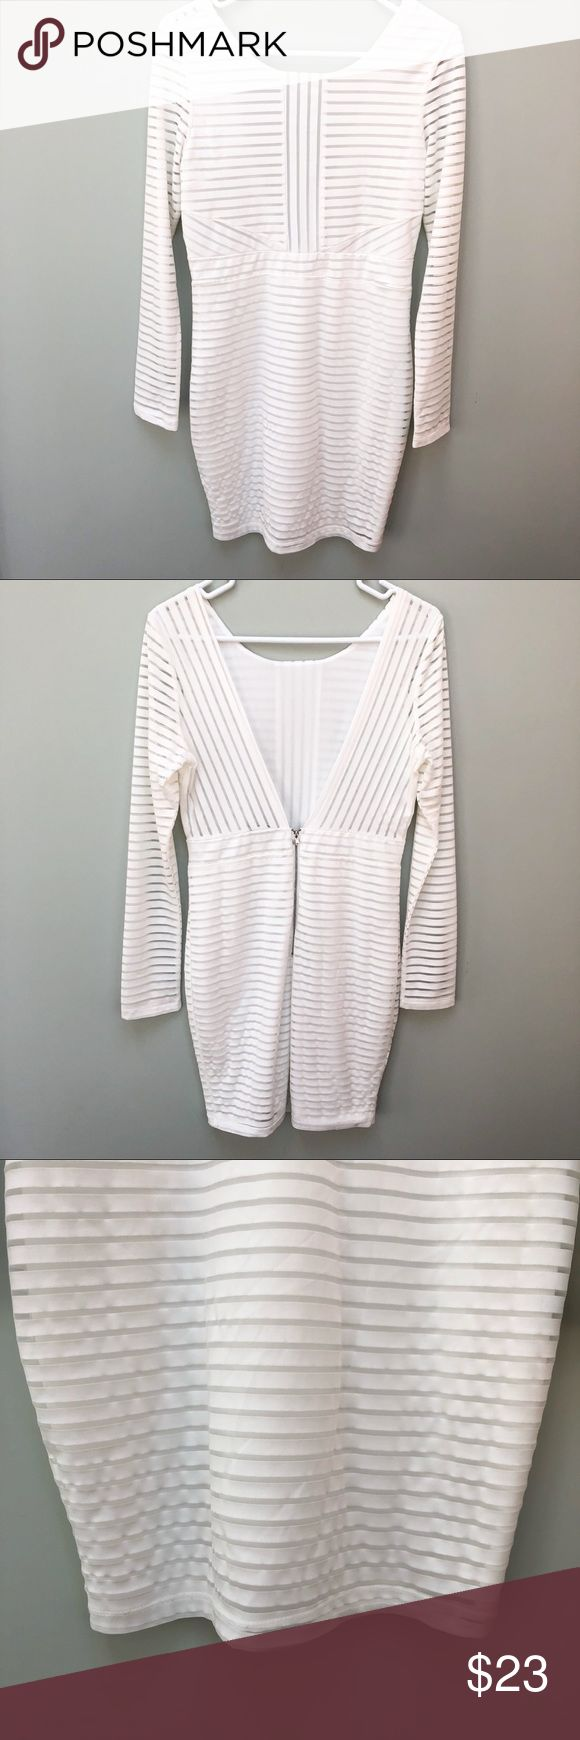 "Long Sleeve Open Back White Stripe Cocktail Dress Great used condition Peekaboo sheer stripes Shoulder to bottom hem 33.5"" Top of zipper to bottom hem 20"" Charlotte Russe Dresses Mini"